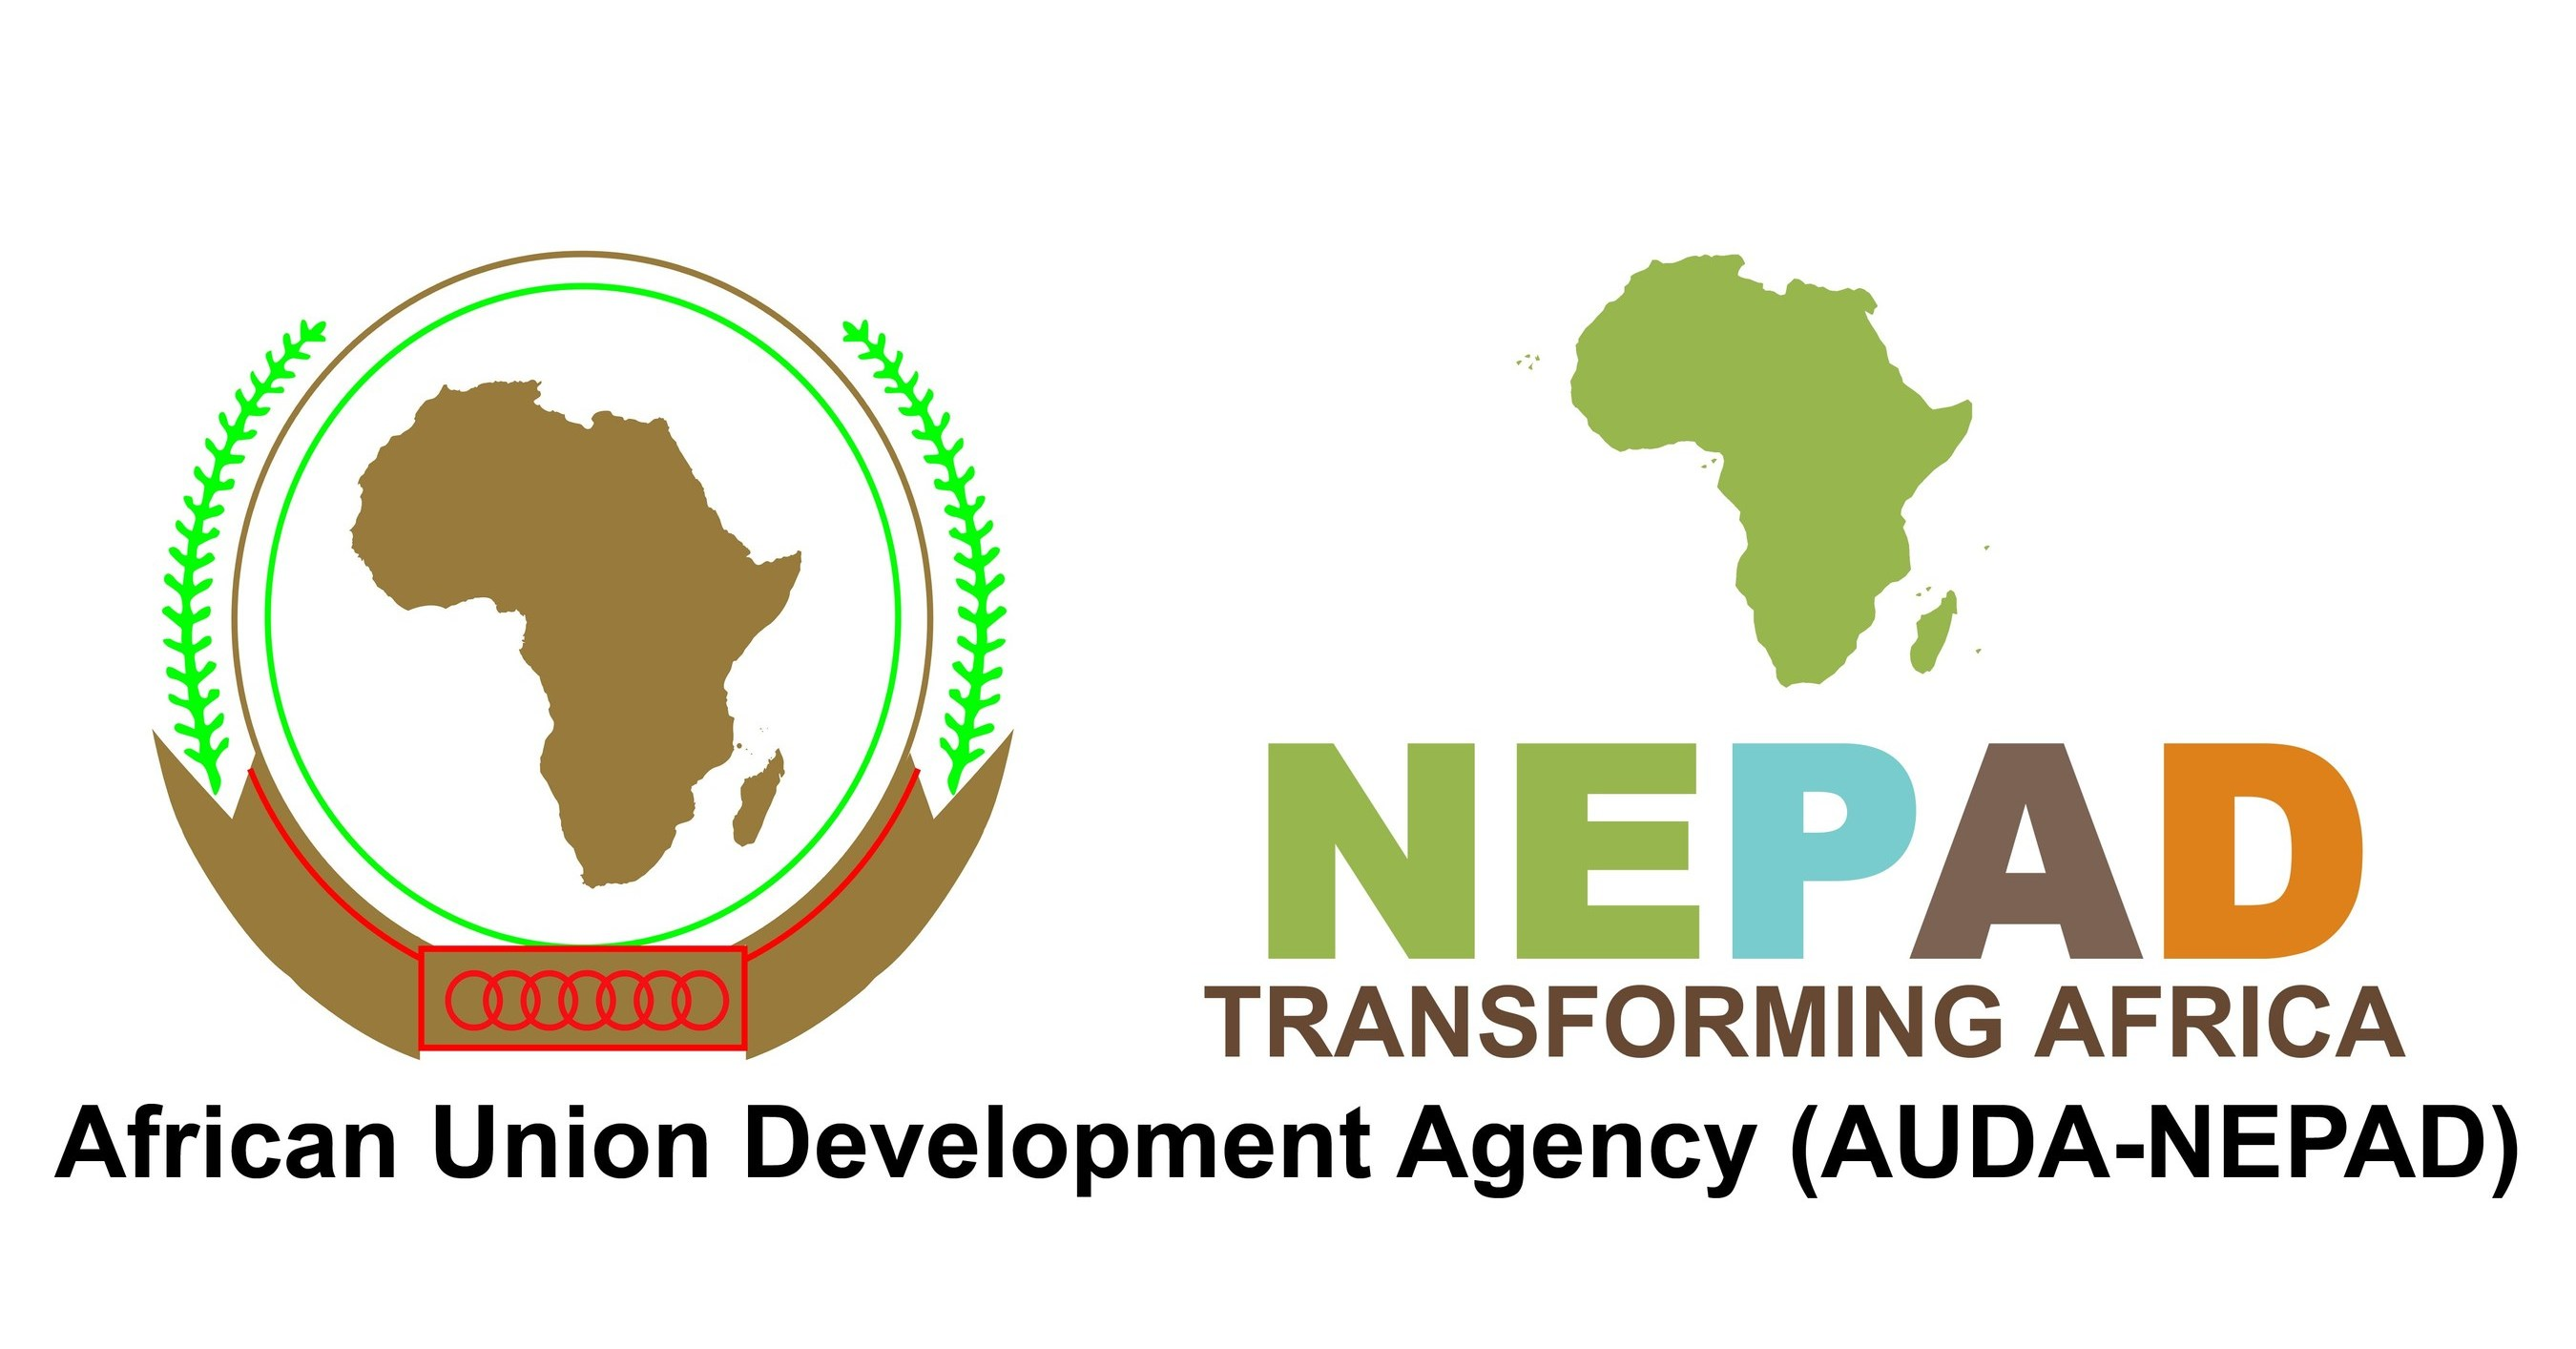 NEPAD Officially Becomes the African Union Development Agency